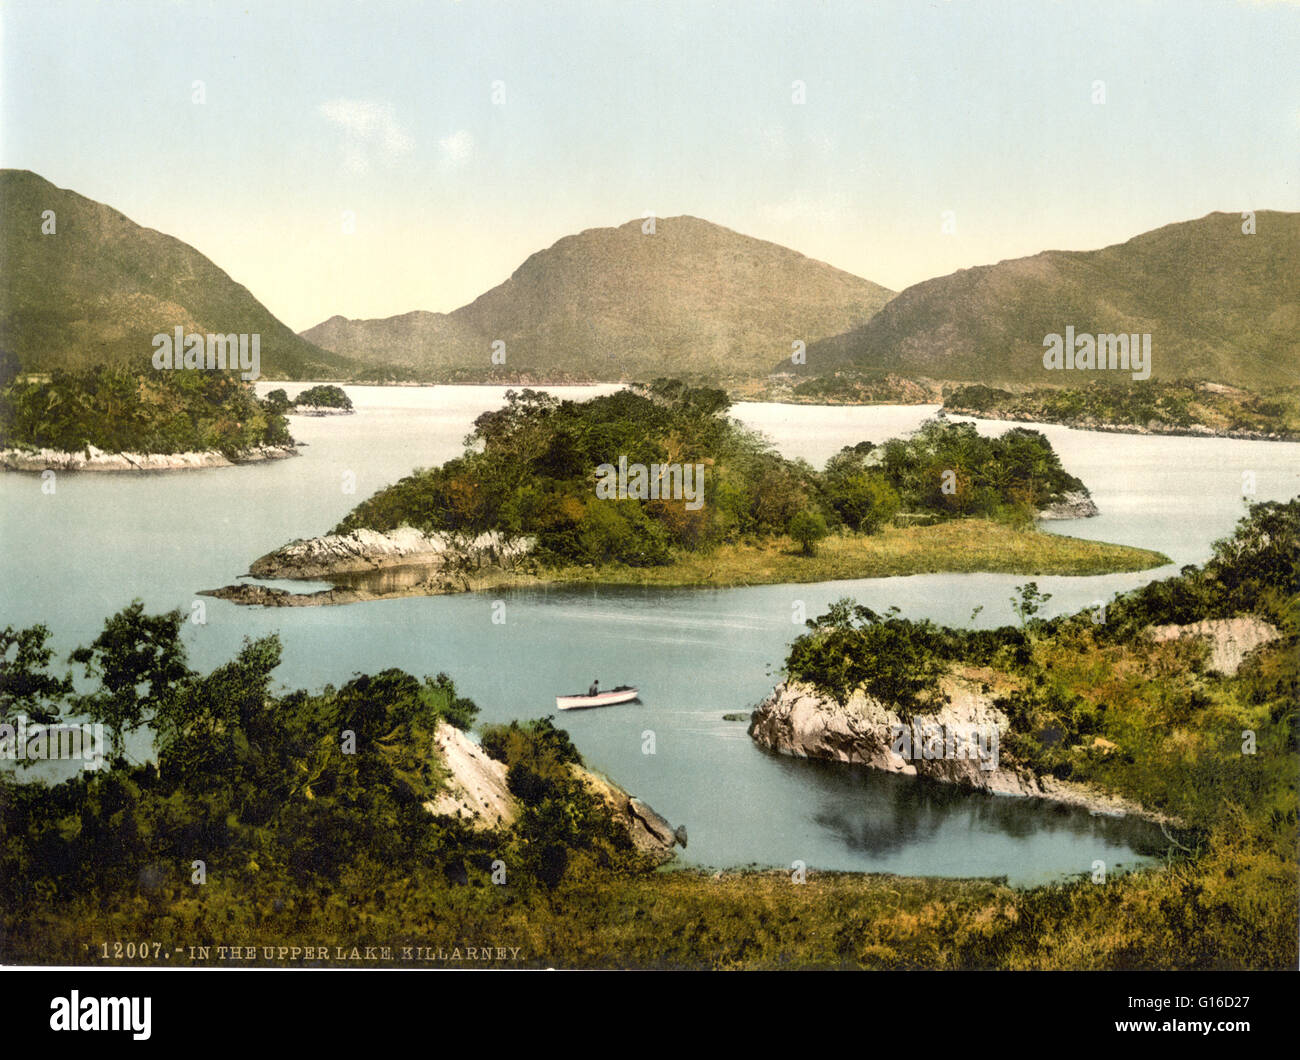 In the Upper Lake, Killarney, County Kerry, Ireland photographed by the Detroit Publishing Company circa 1890-1900. Stock Photo